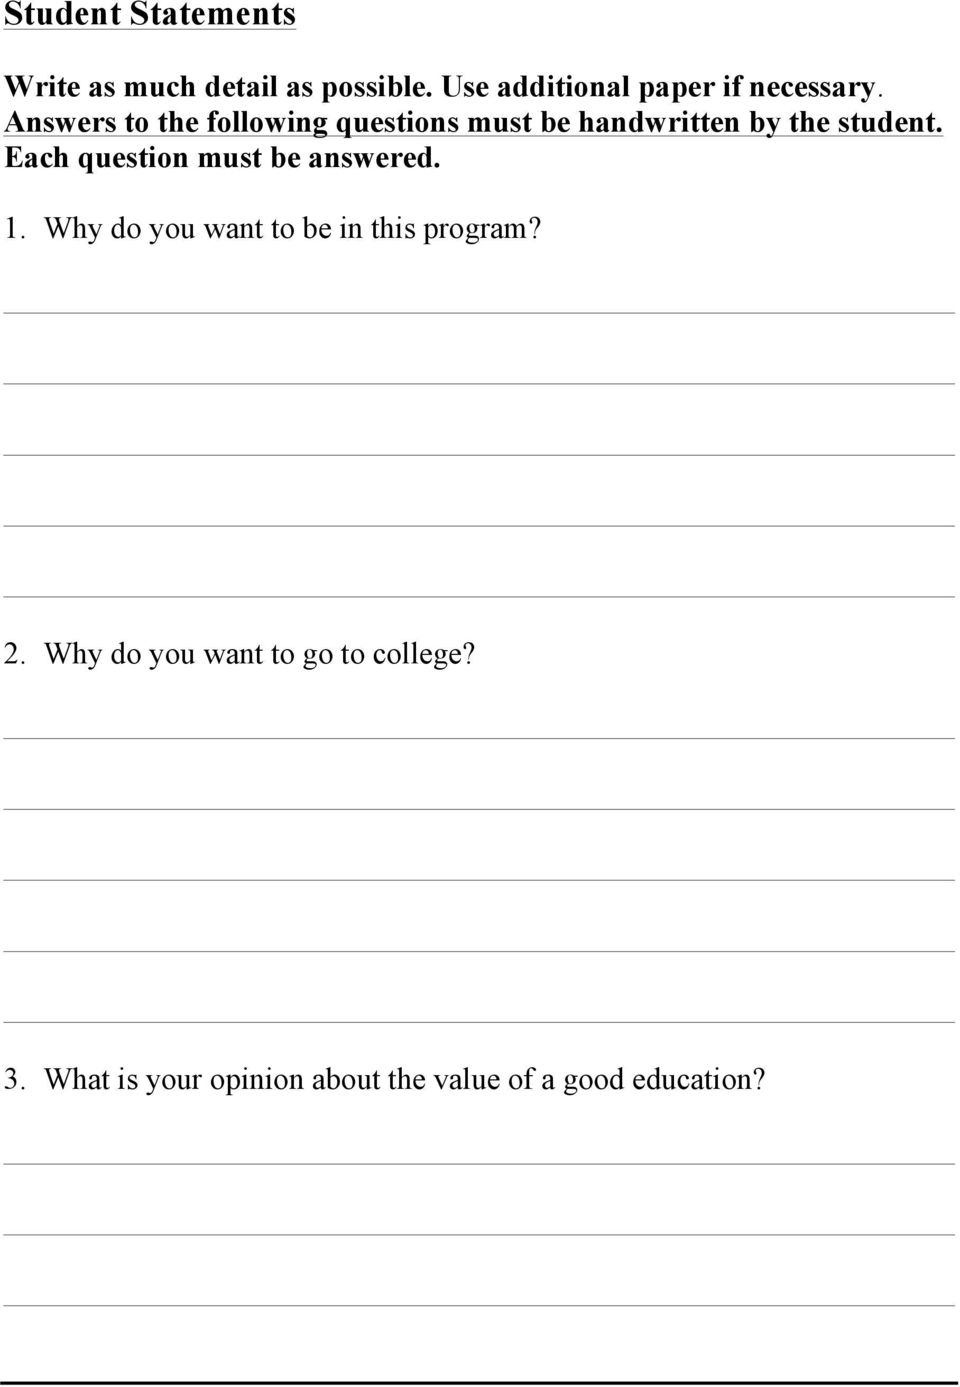 Answers to the following questions must be handwritten by the student.